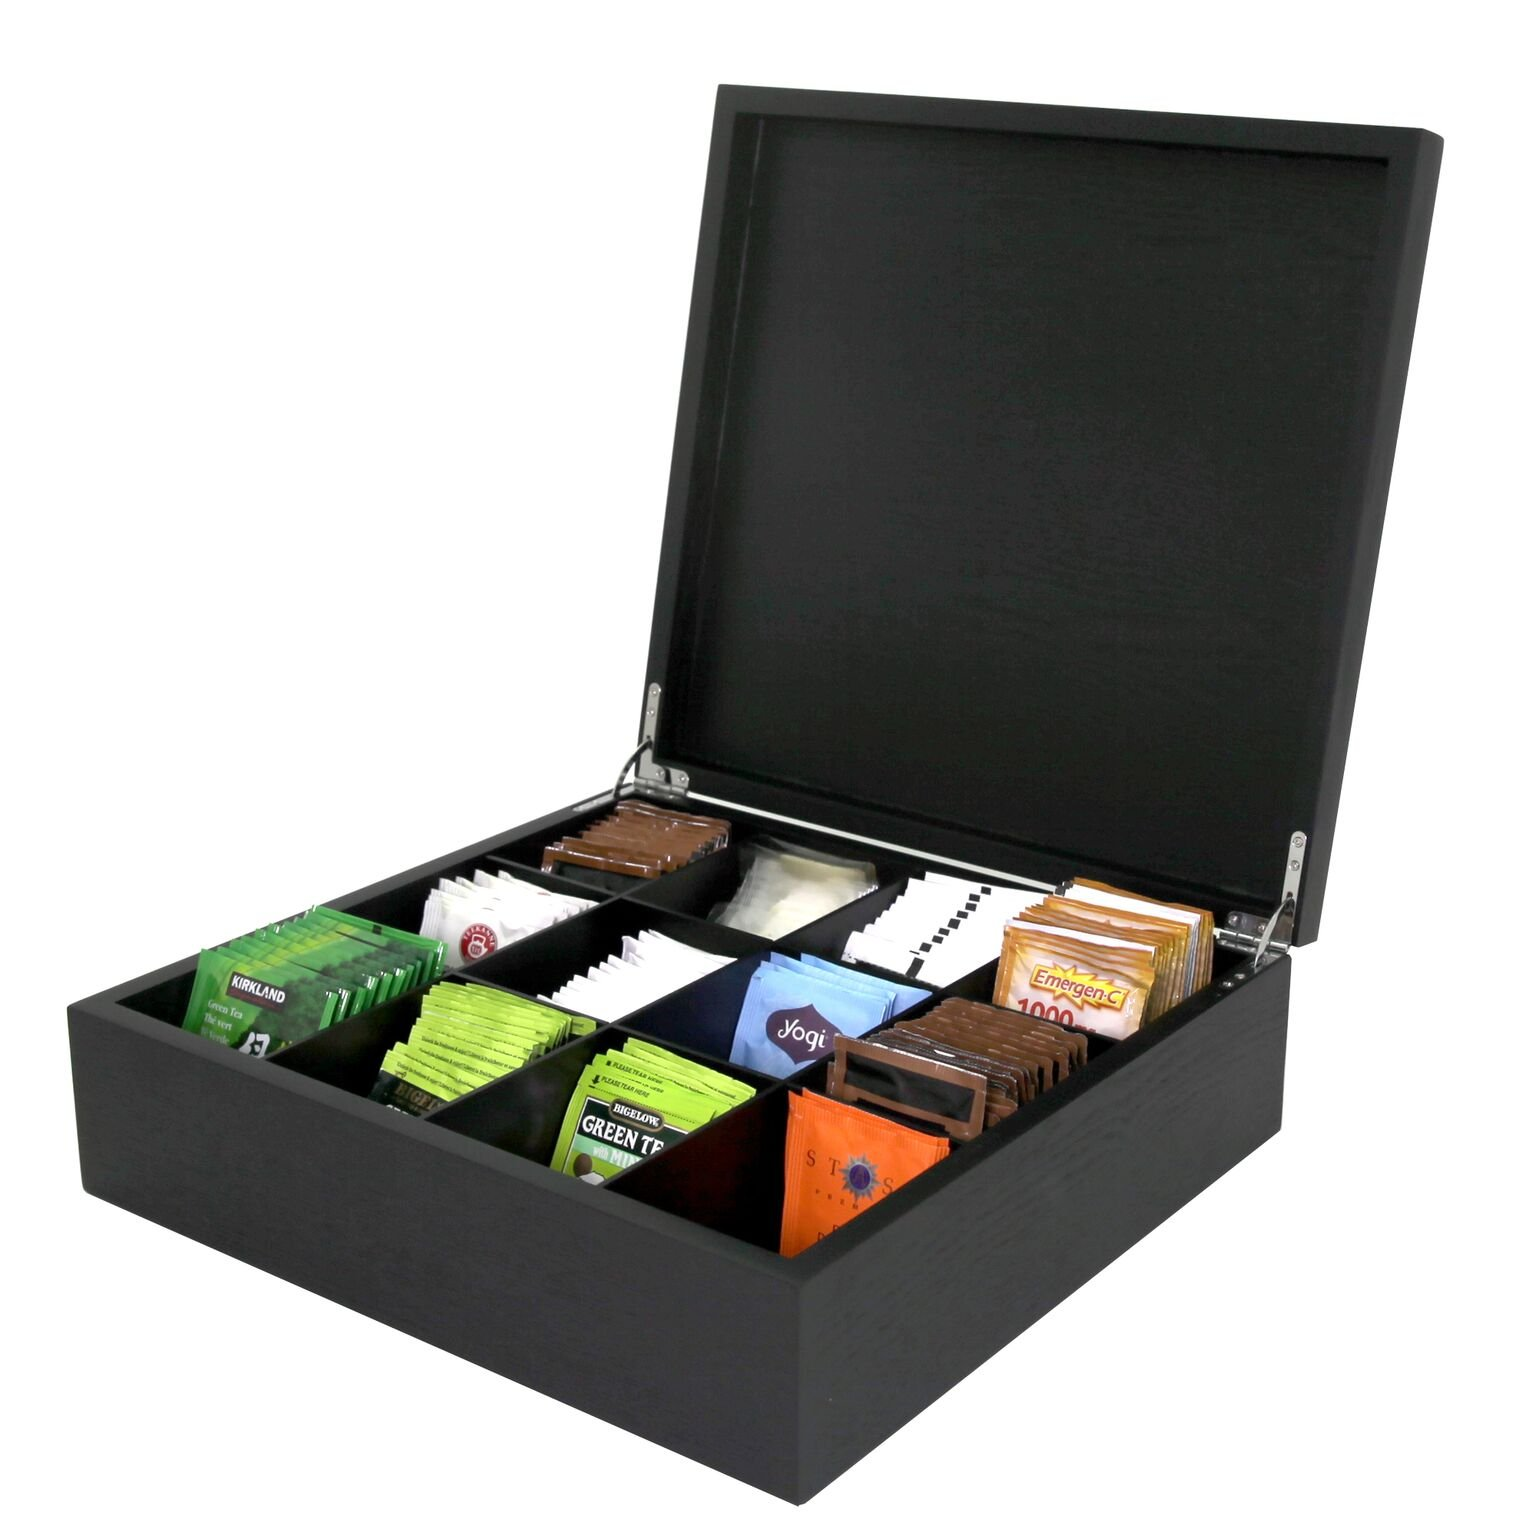 Tea Box Wood Storage Organizer Tea Bags 250+, 12 Compartments by Tech Swiss